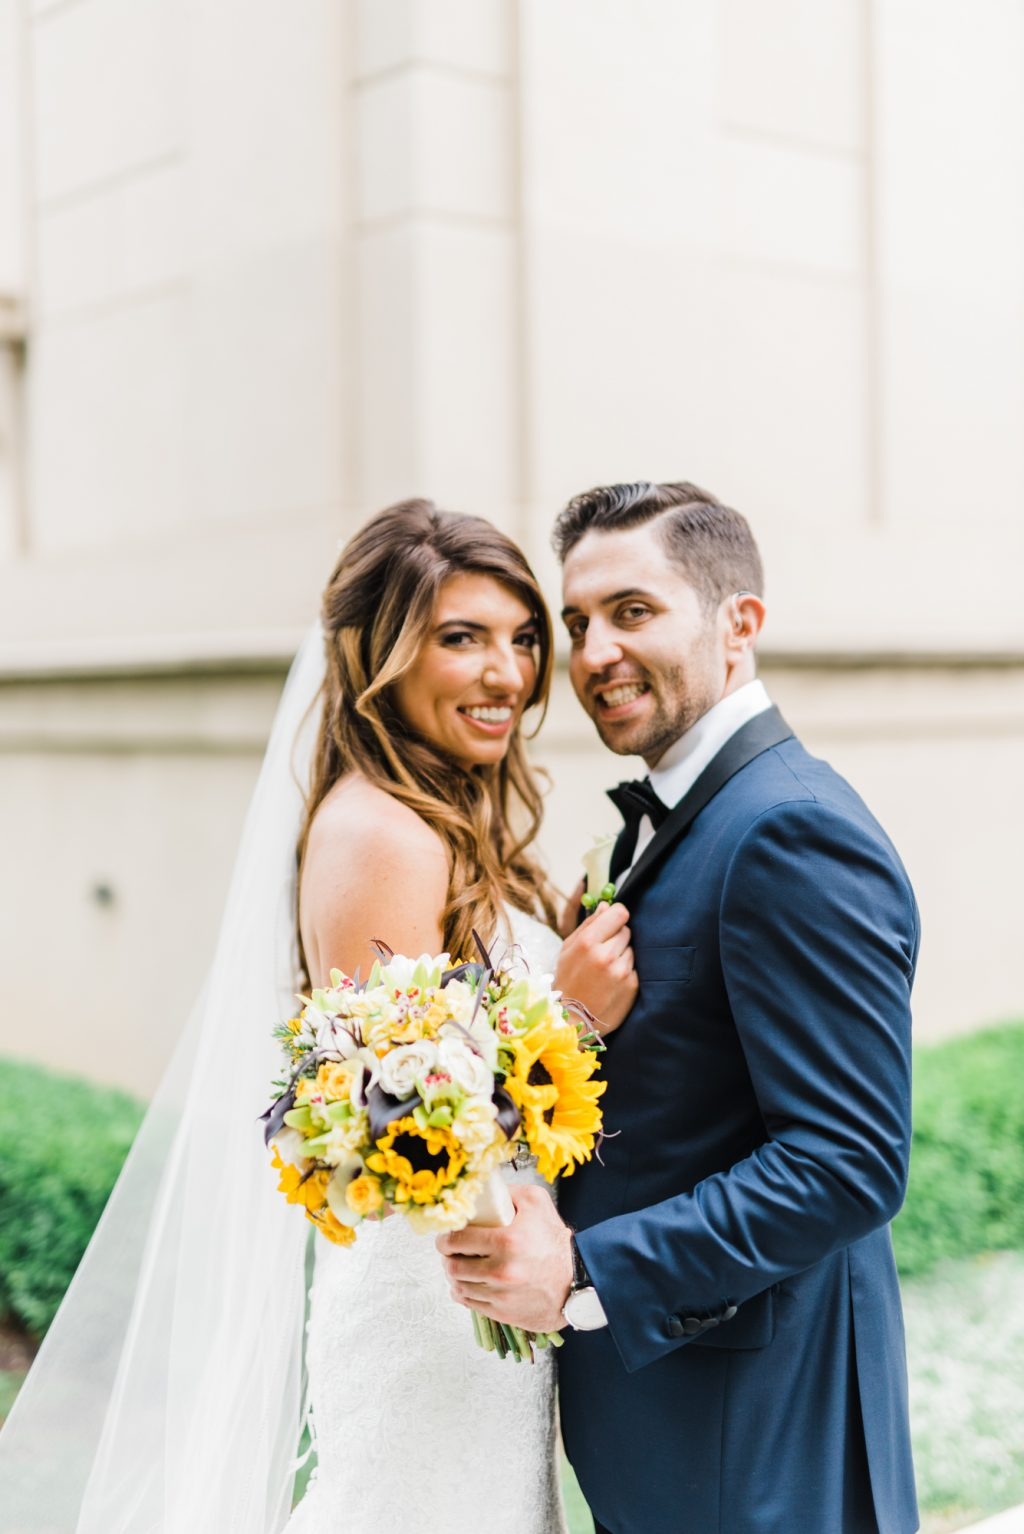 haleyrichterphoto-front-and-palmer-spring-wedding-rodin-museum-loews-hotel-philadelphia-088